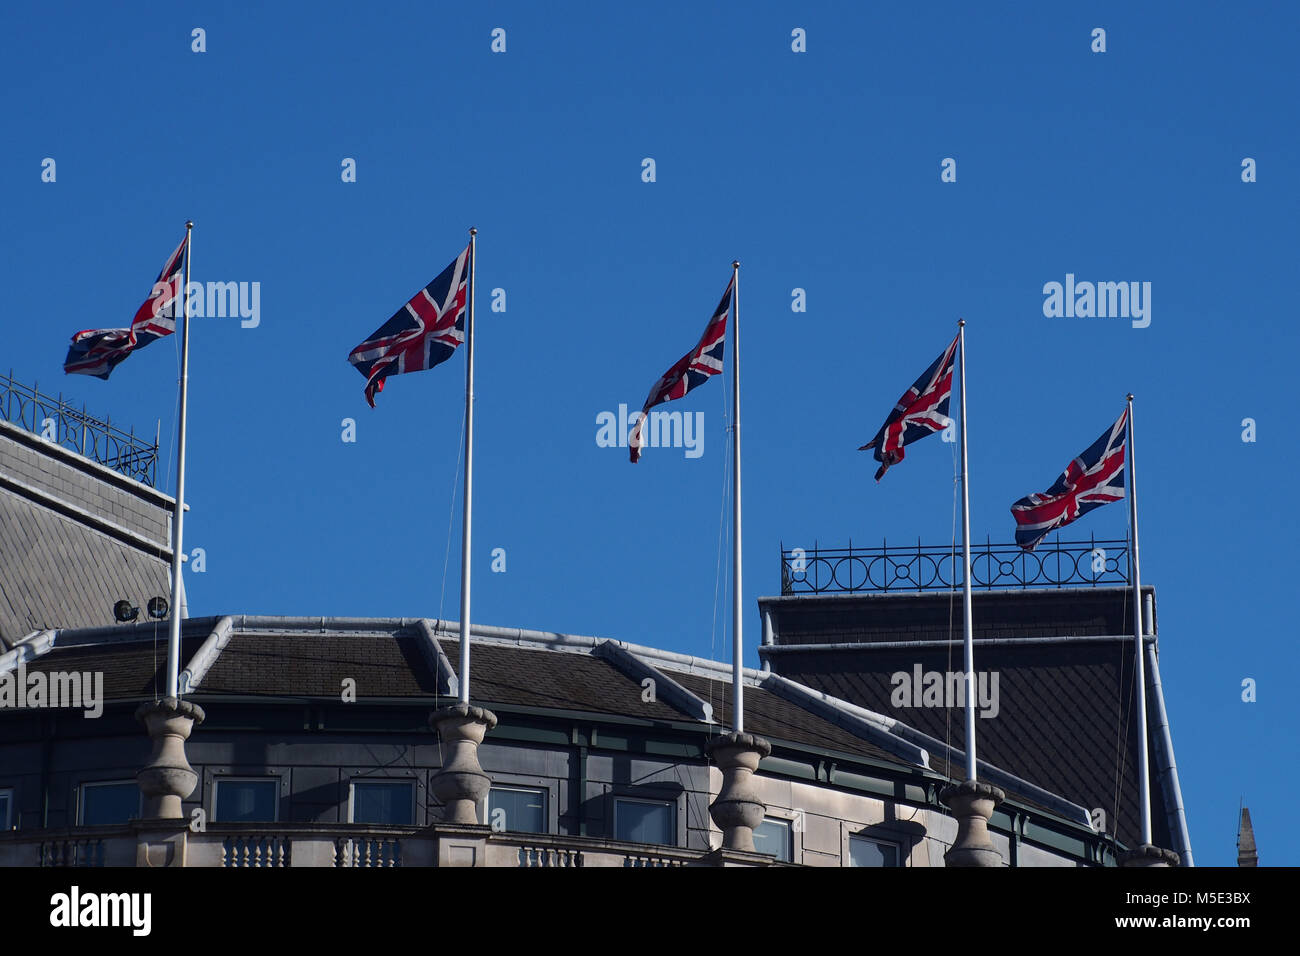 A row of Union flags flying on top of a building next to Trafalgar Square, London against a blue sky - Stock Image